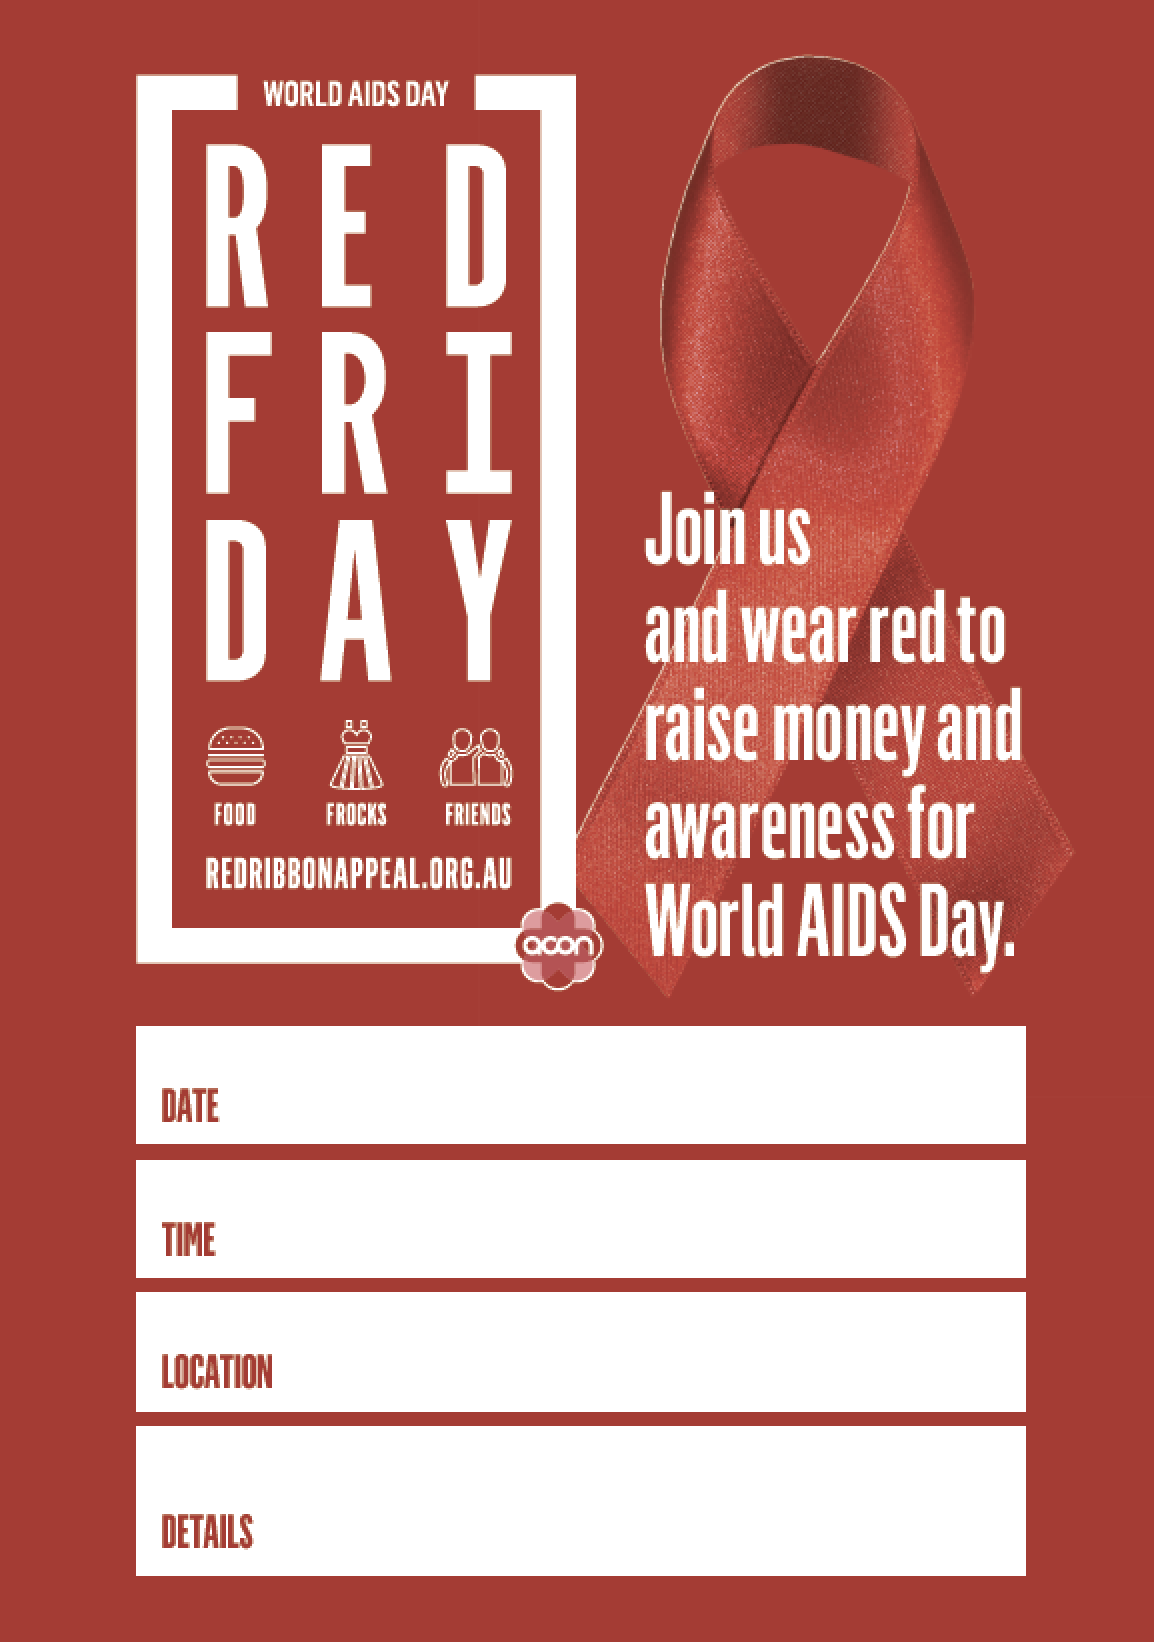 Red Friday - Poster 'Event' (PDF)